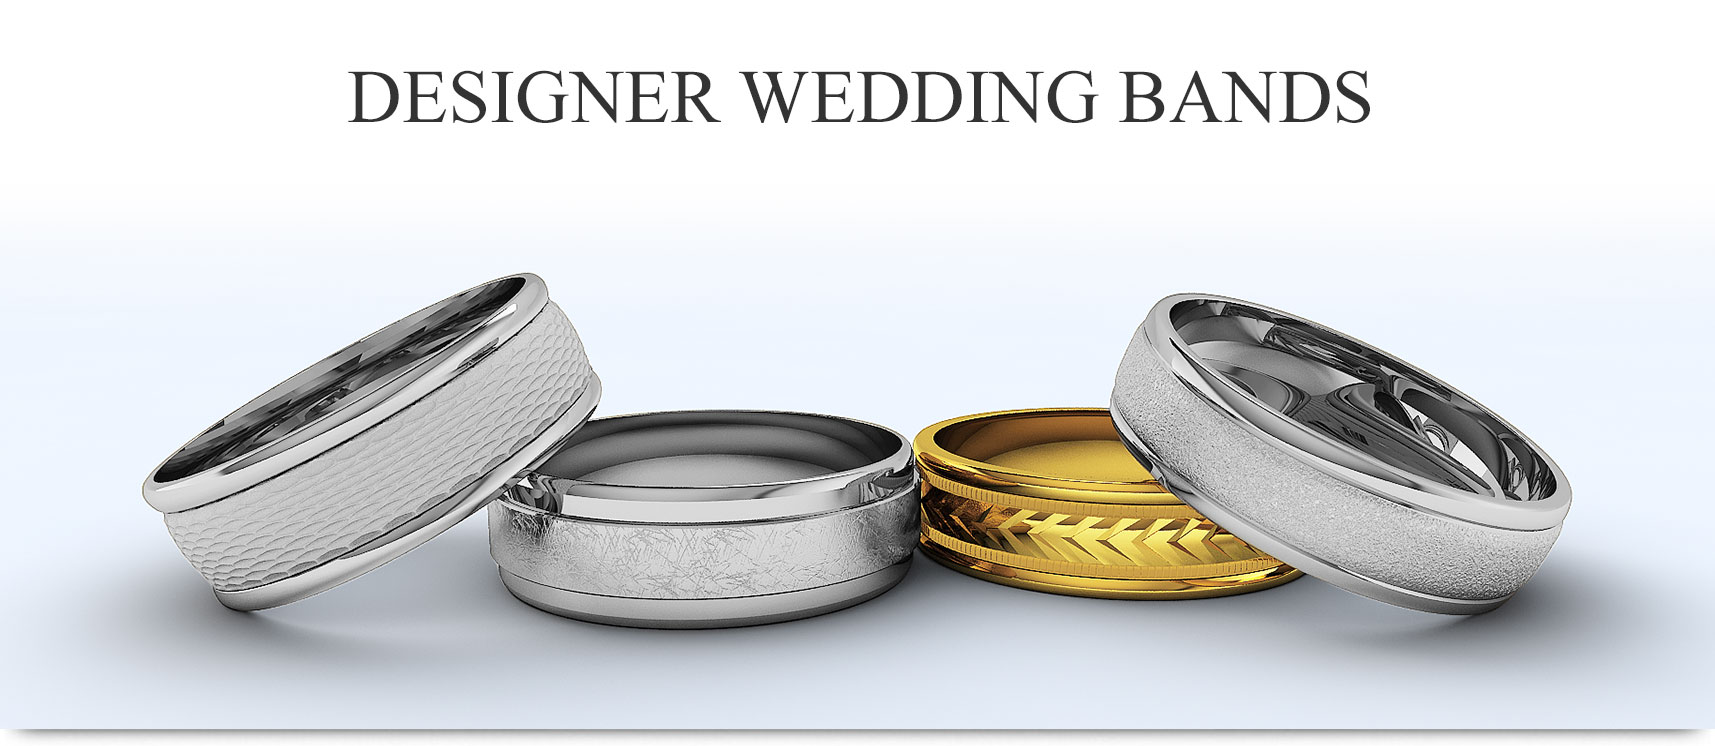 designer wedding rings Wedding Decor Ideas